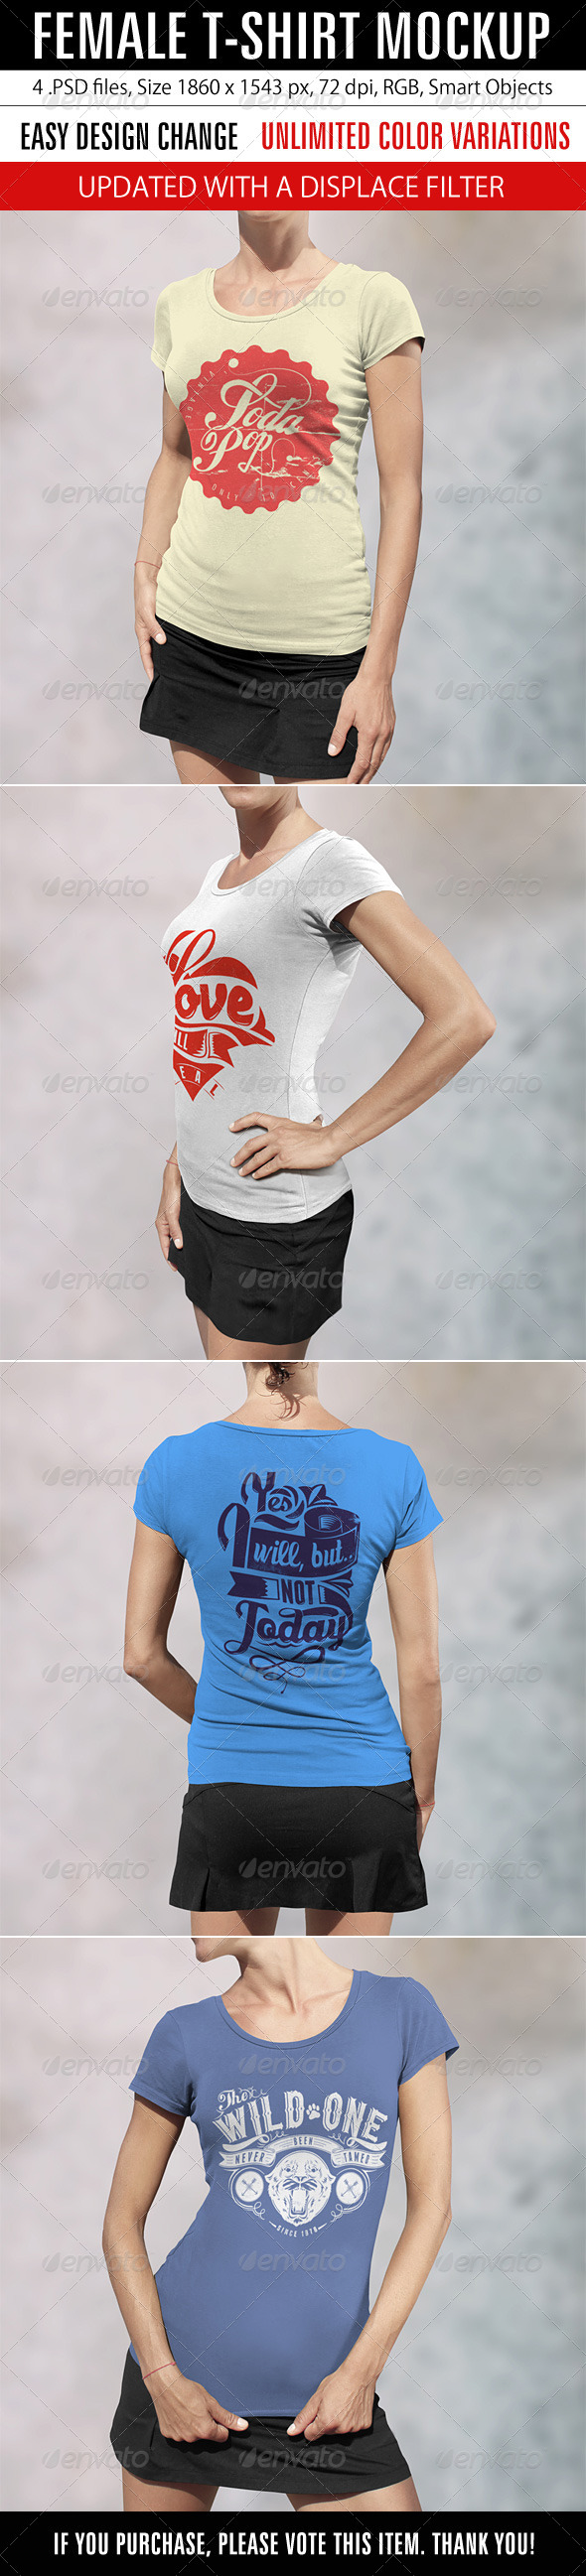 GraphicRiver Female T-Shirt Mockup 8472686